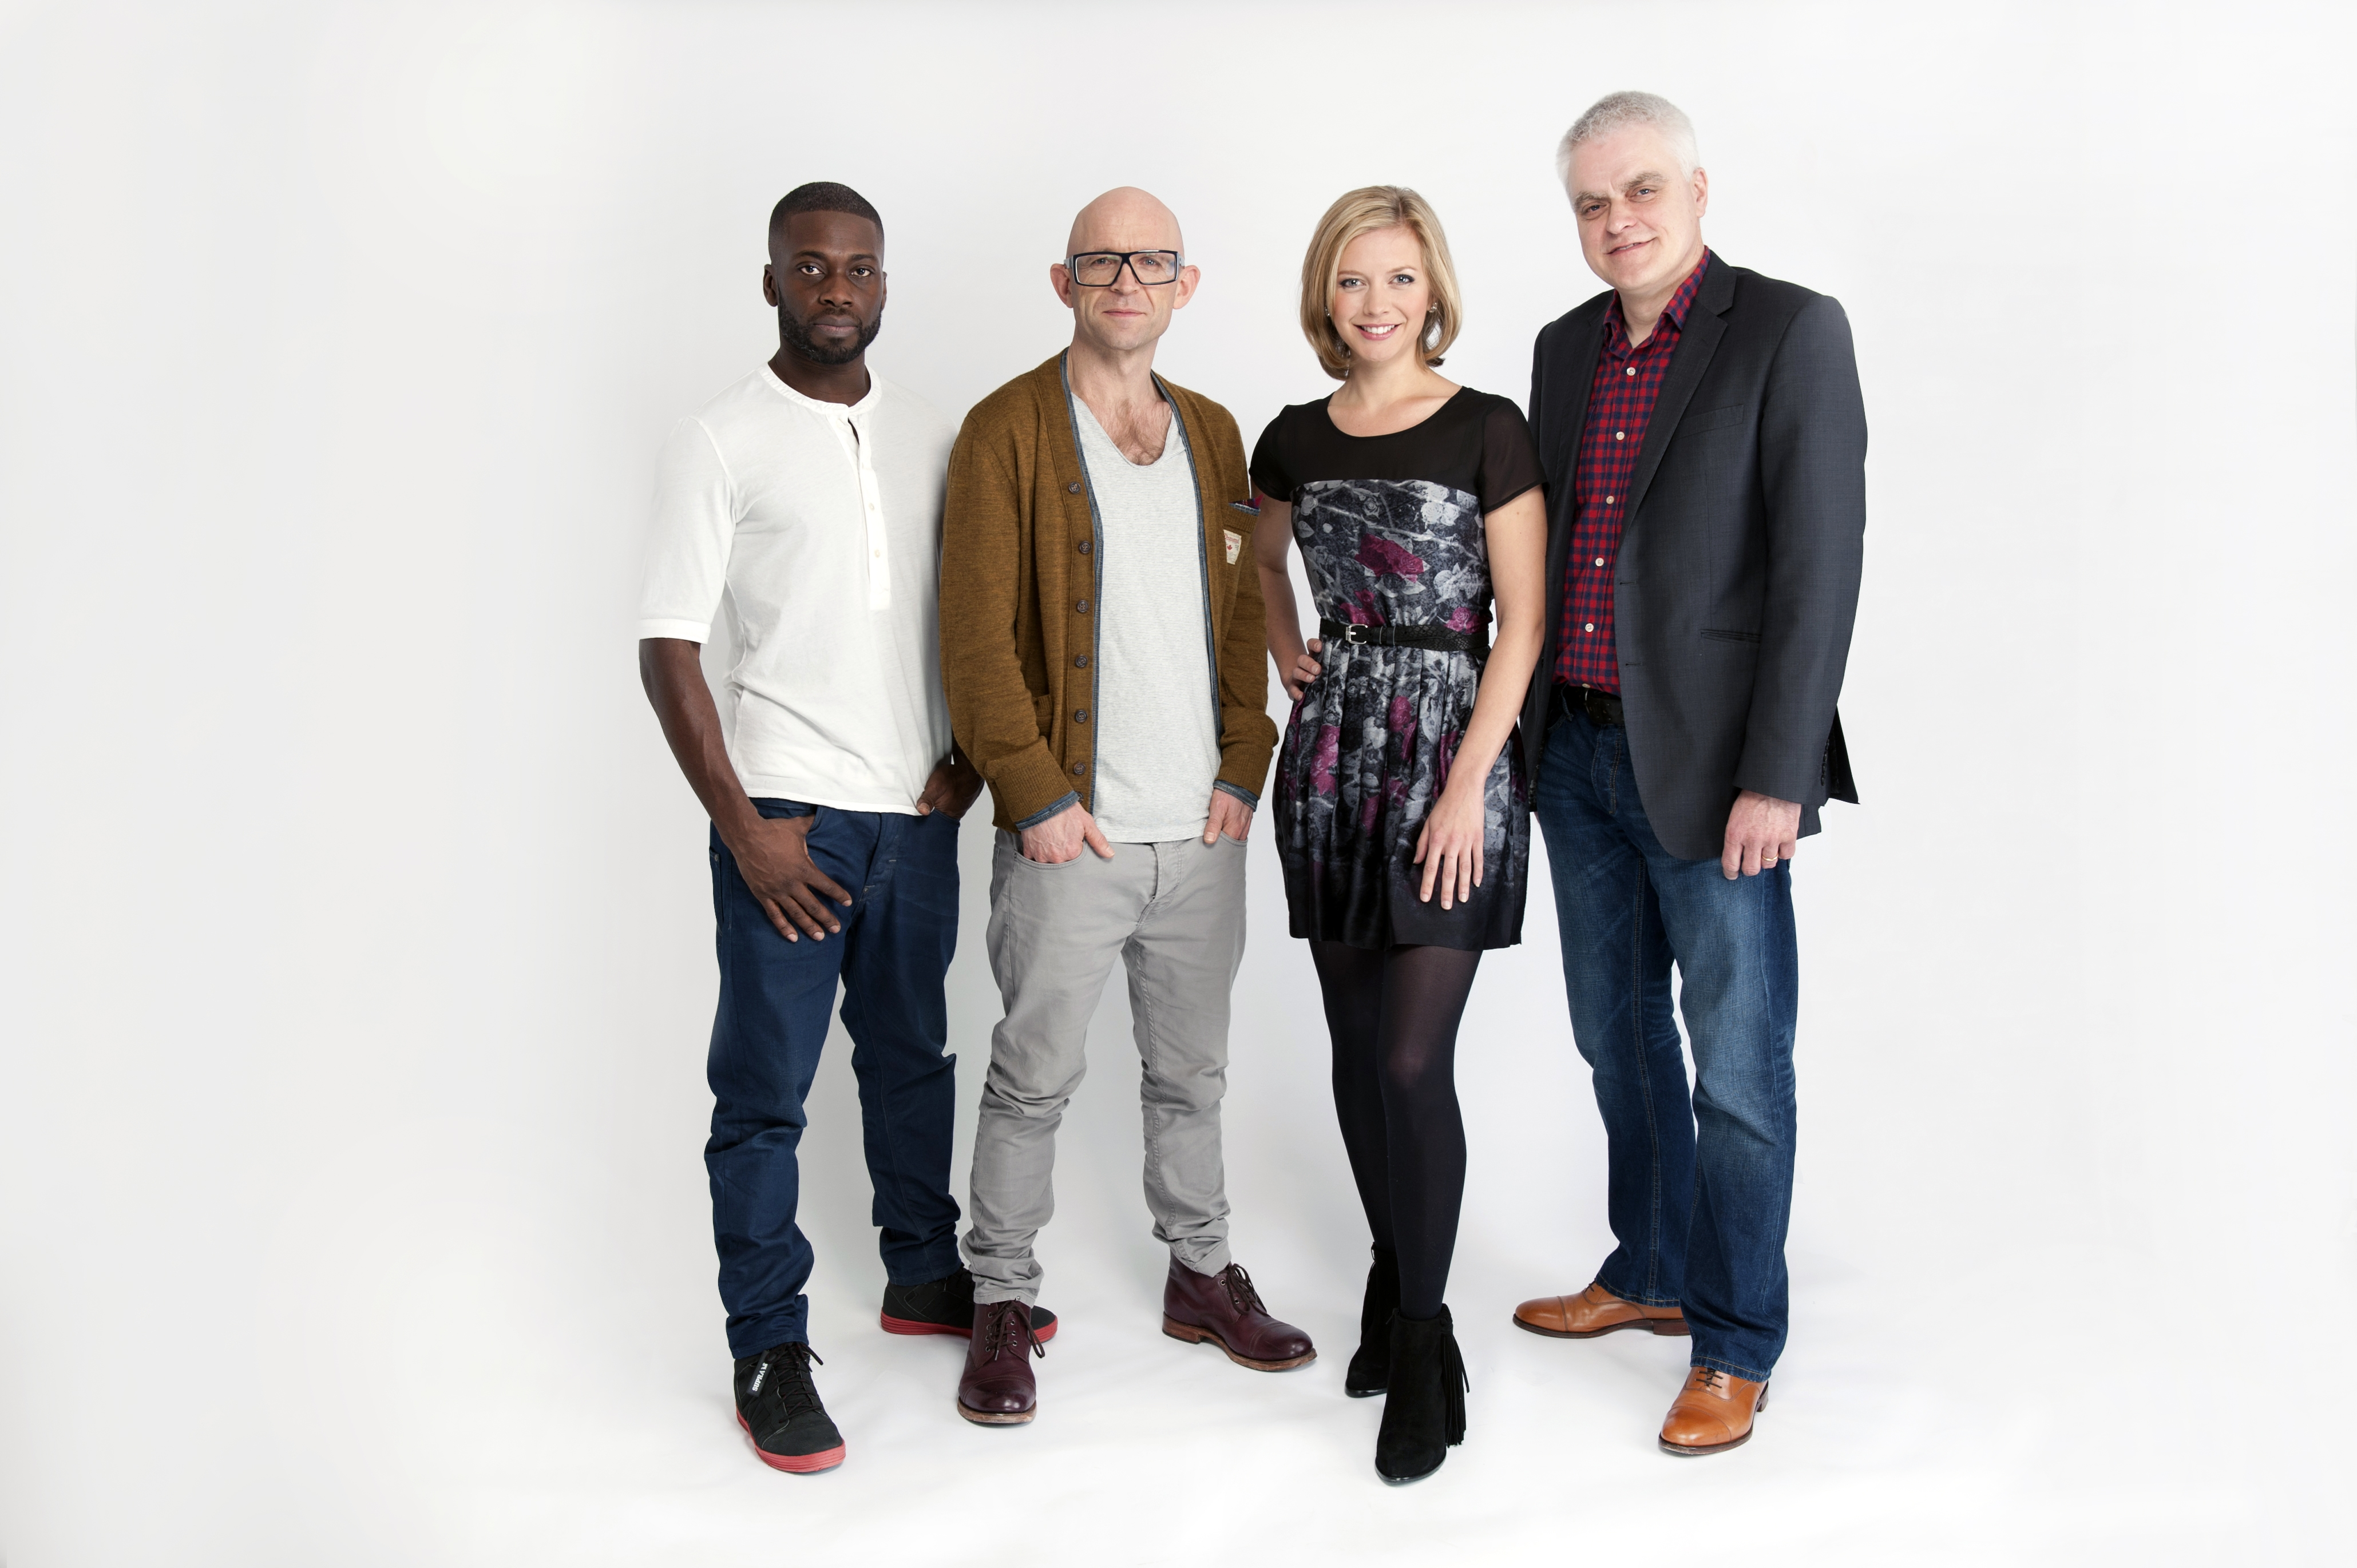 All four presenters from the new line-up of The Gadget Show will appear together on stage at the Gadget Show Live this April.